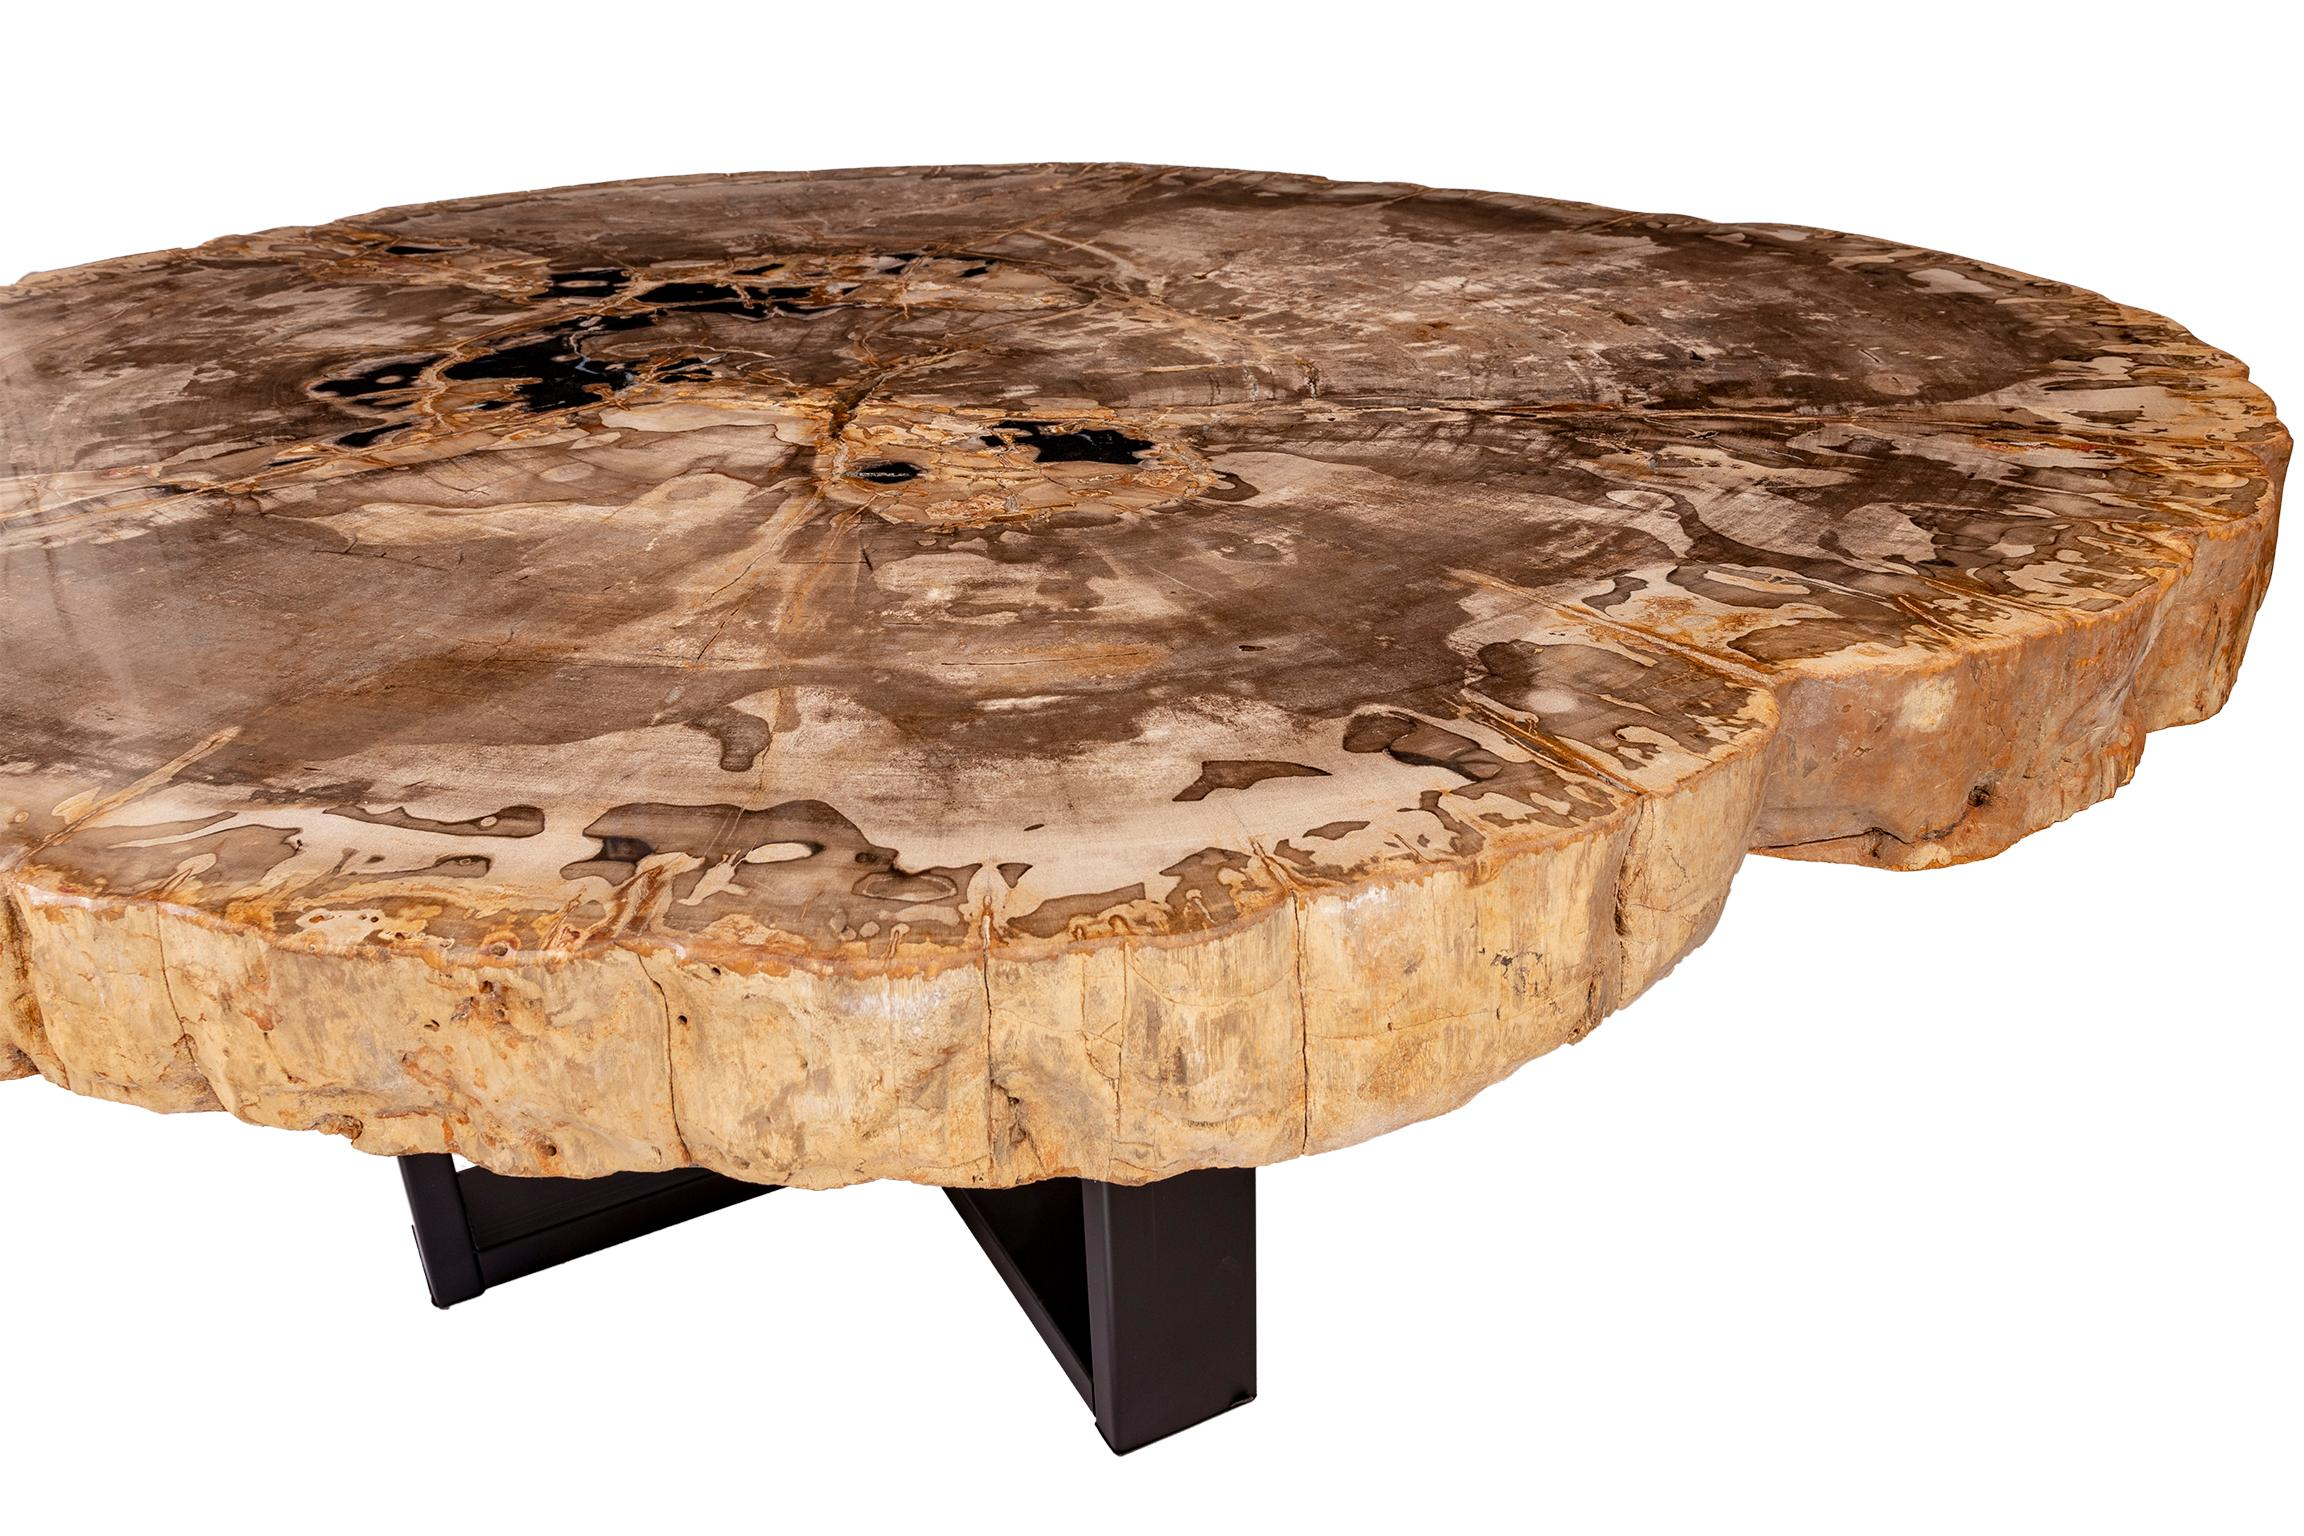 Groovy Center Of Coffee Table Natural Circular Shape Petrified Wood With Metal Base Download Free Architecture Designs Scobabritishbridgeorg